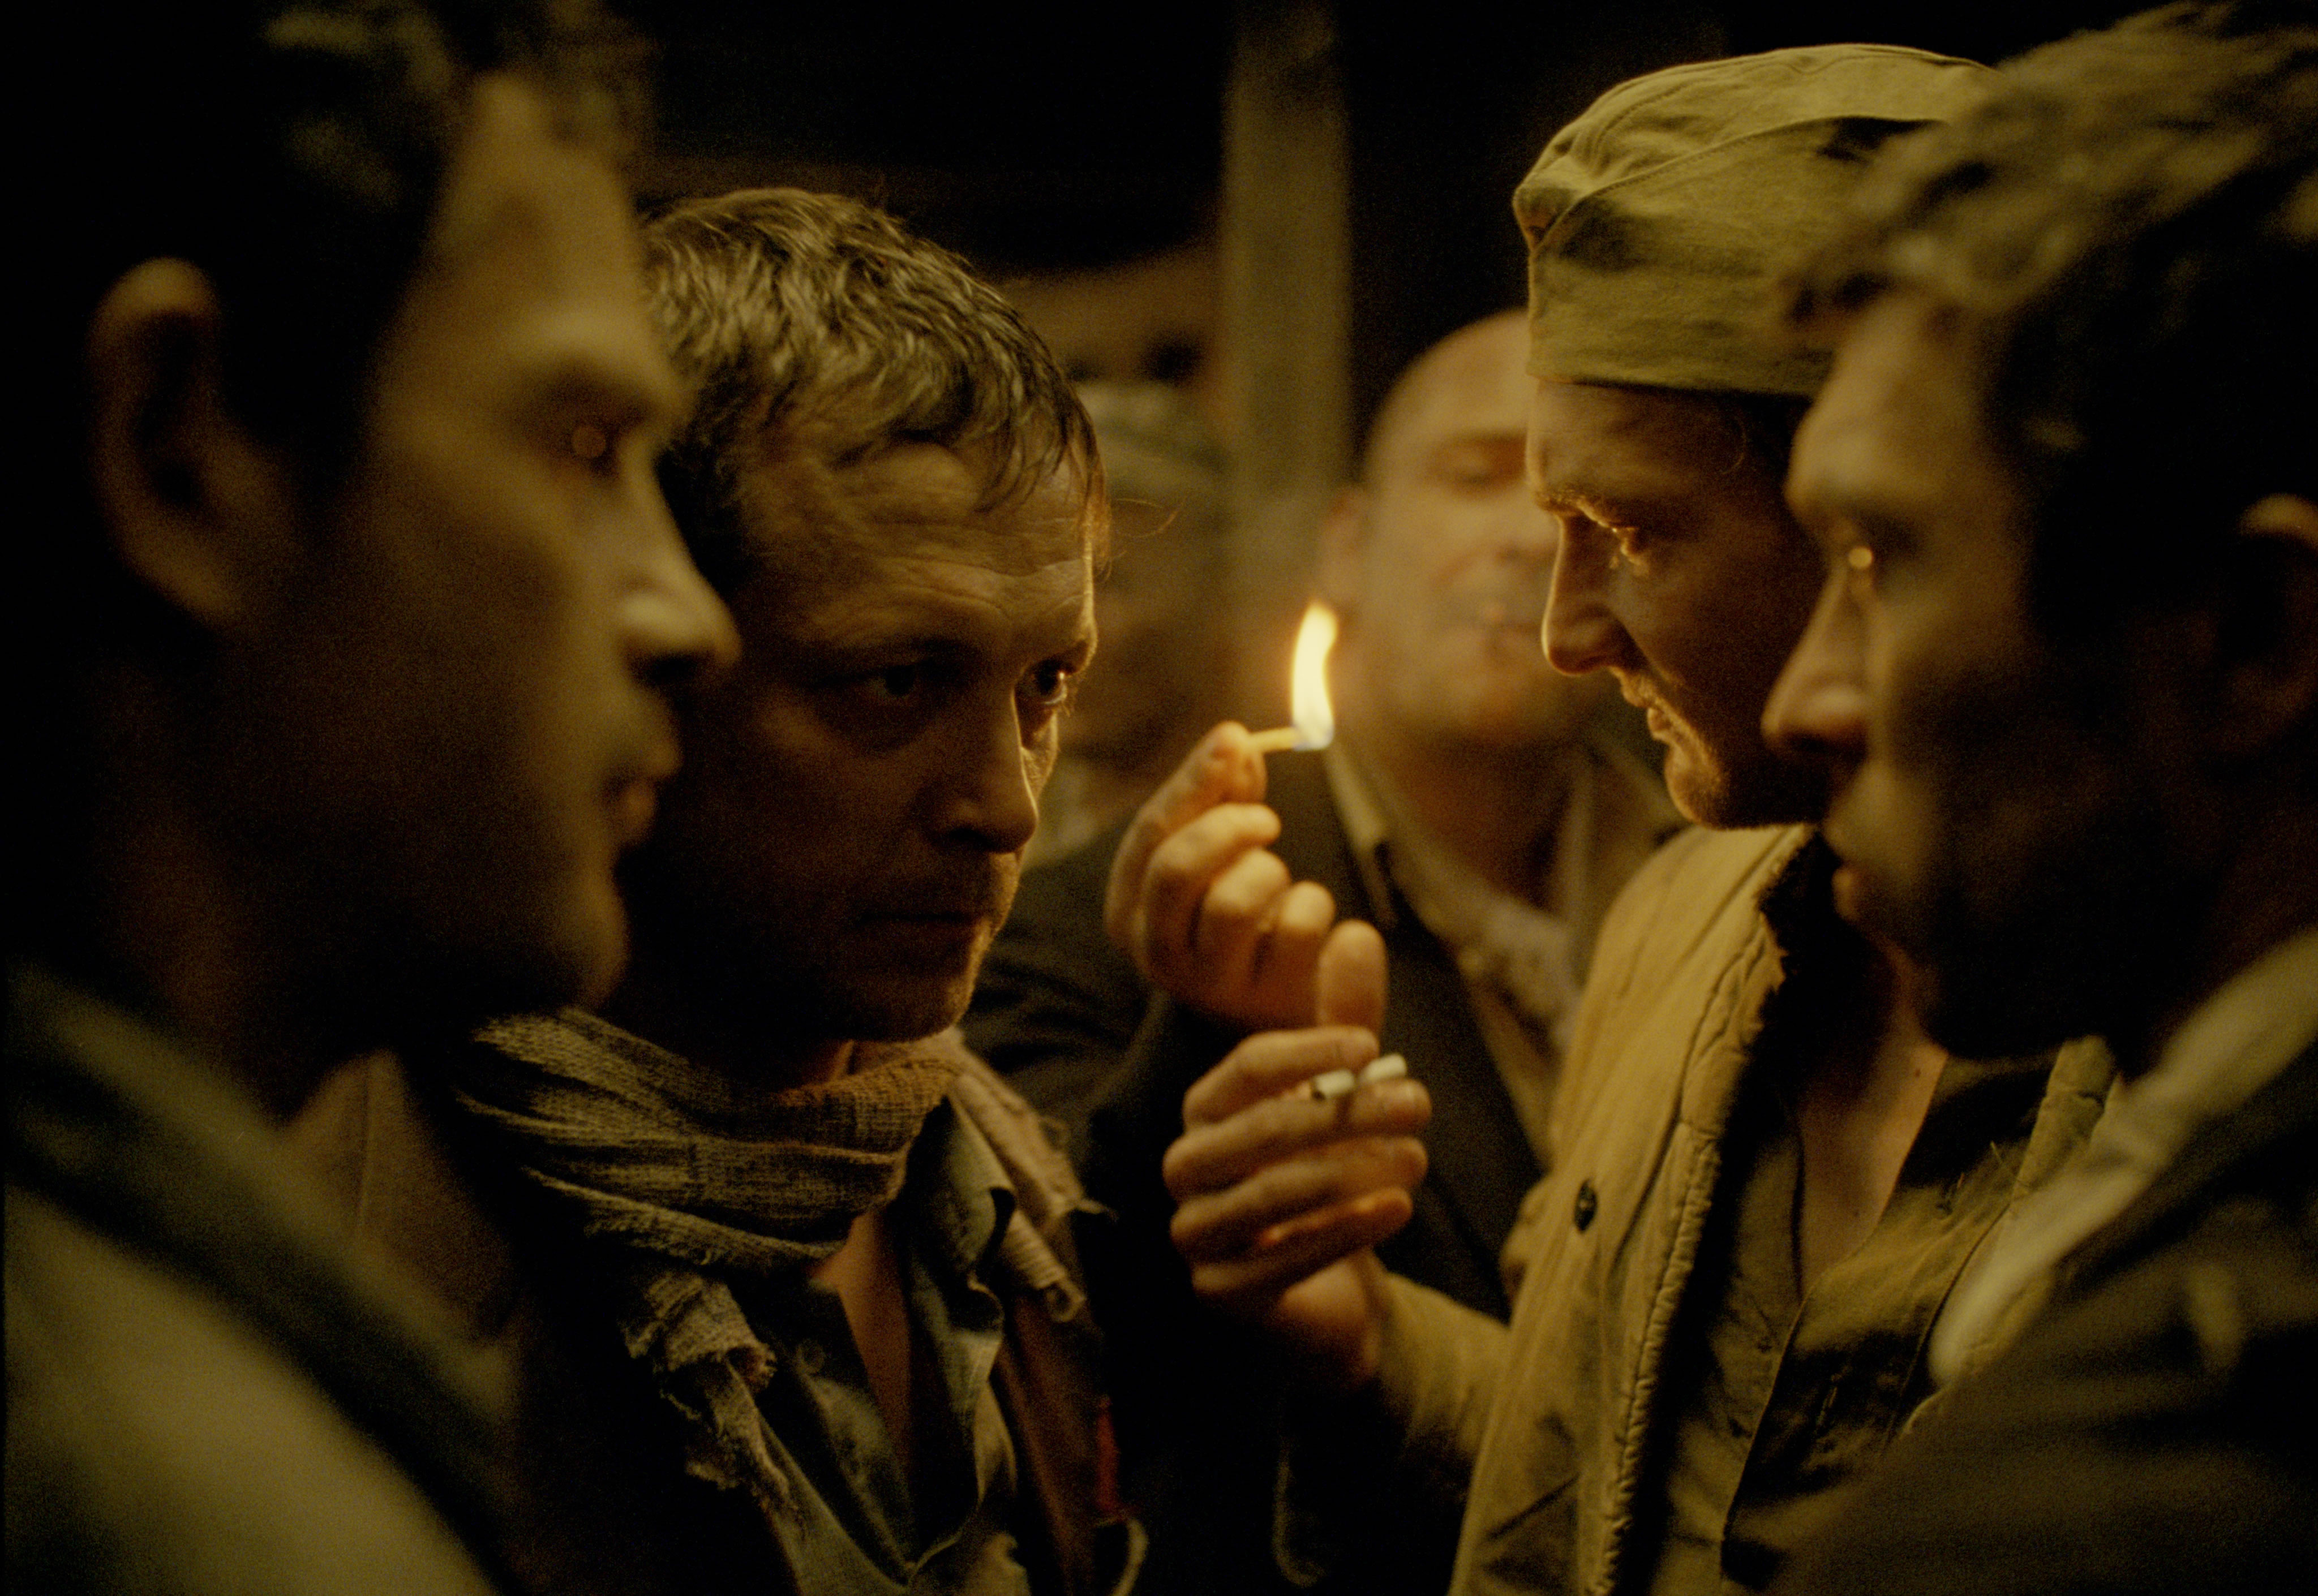 turning on lighter, men in confined space, son of saul